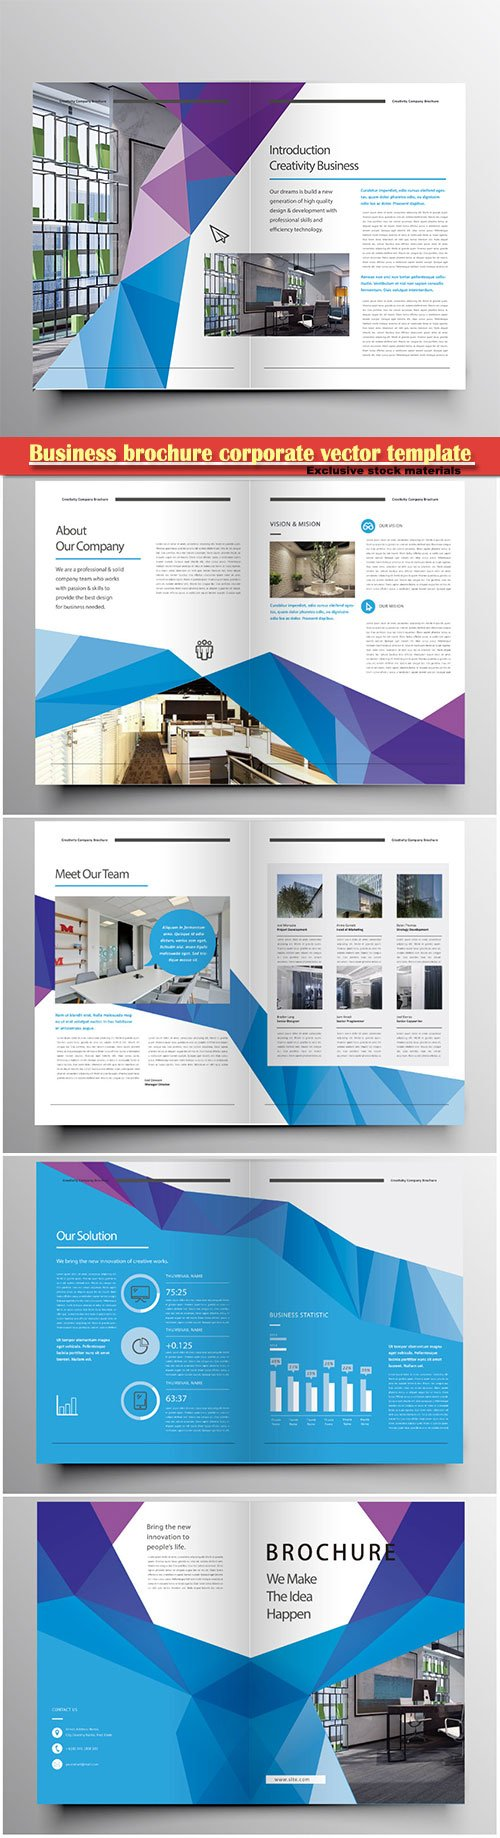 Business brochure corporate vector template, magazine flyer mockup # 54